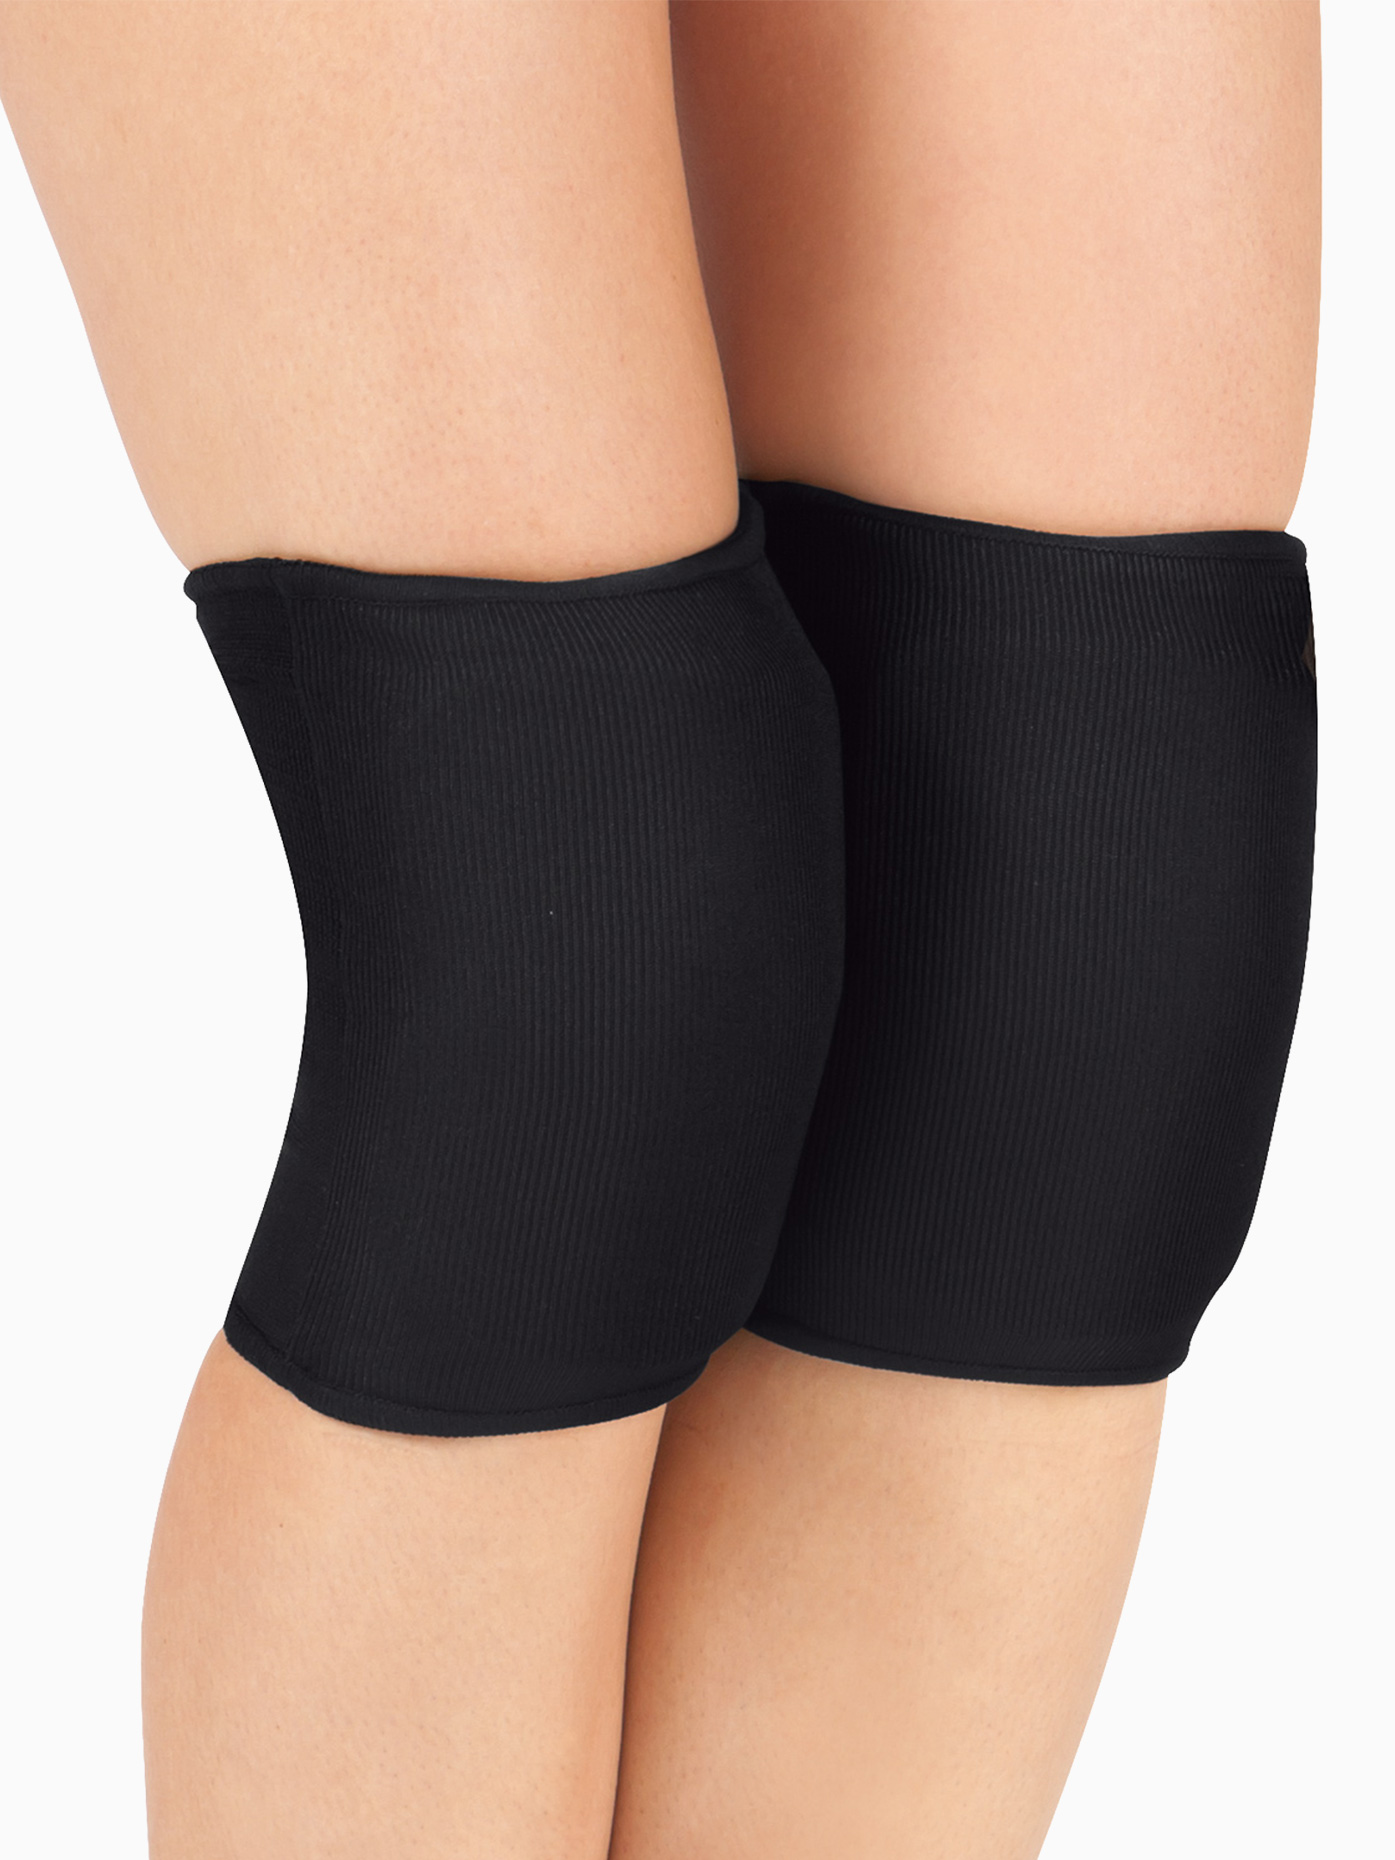 Body Basic Adult/Child Black Knee or Elbow Pads 3500